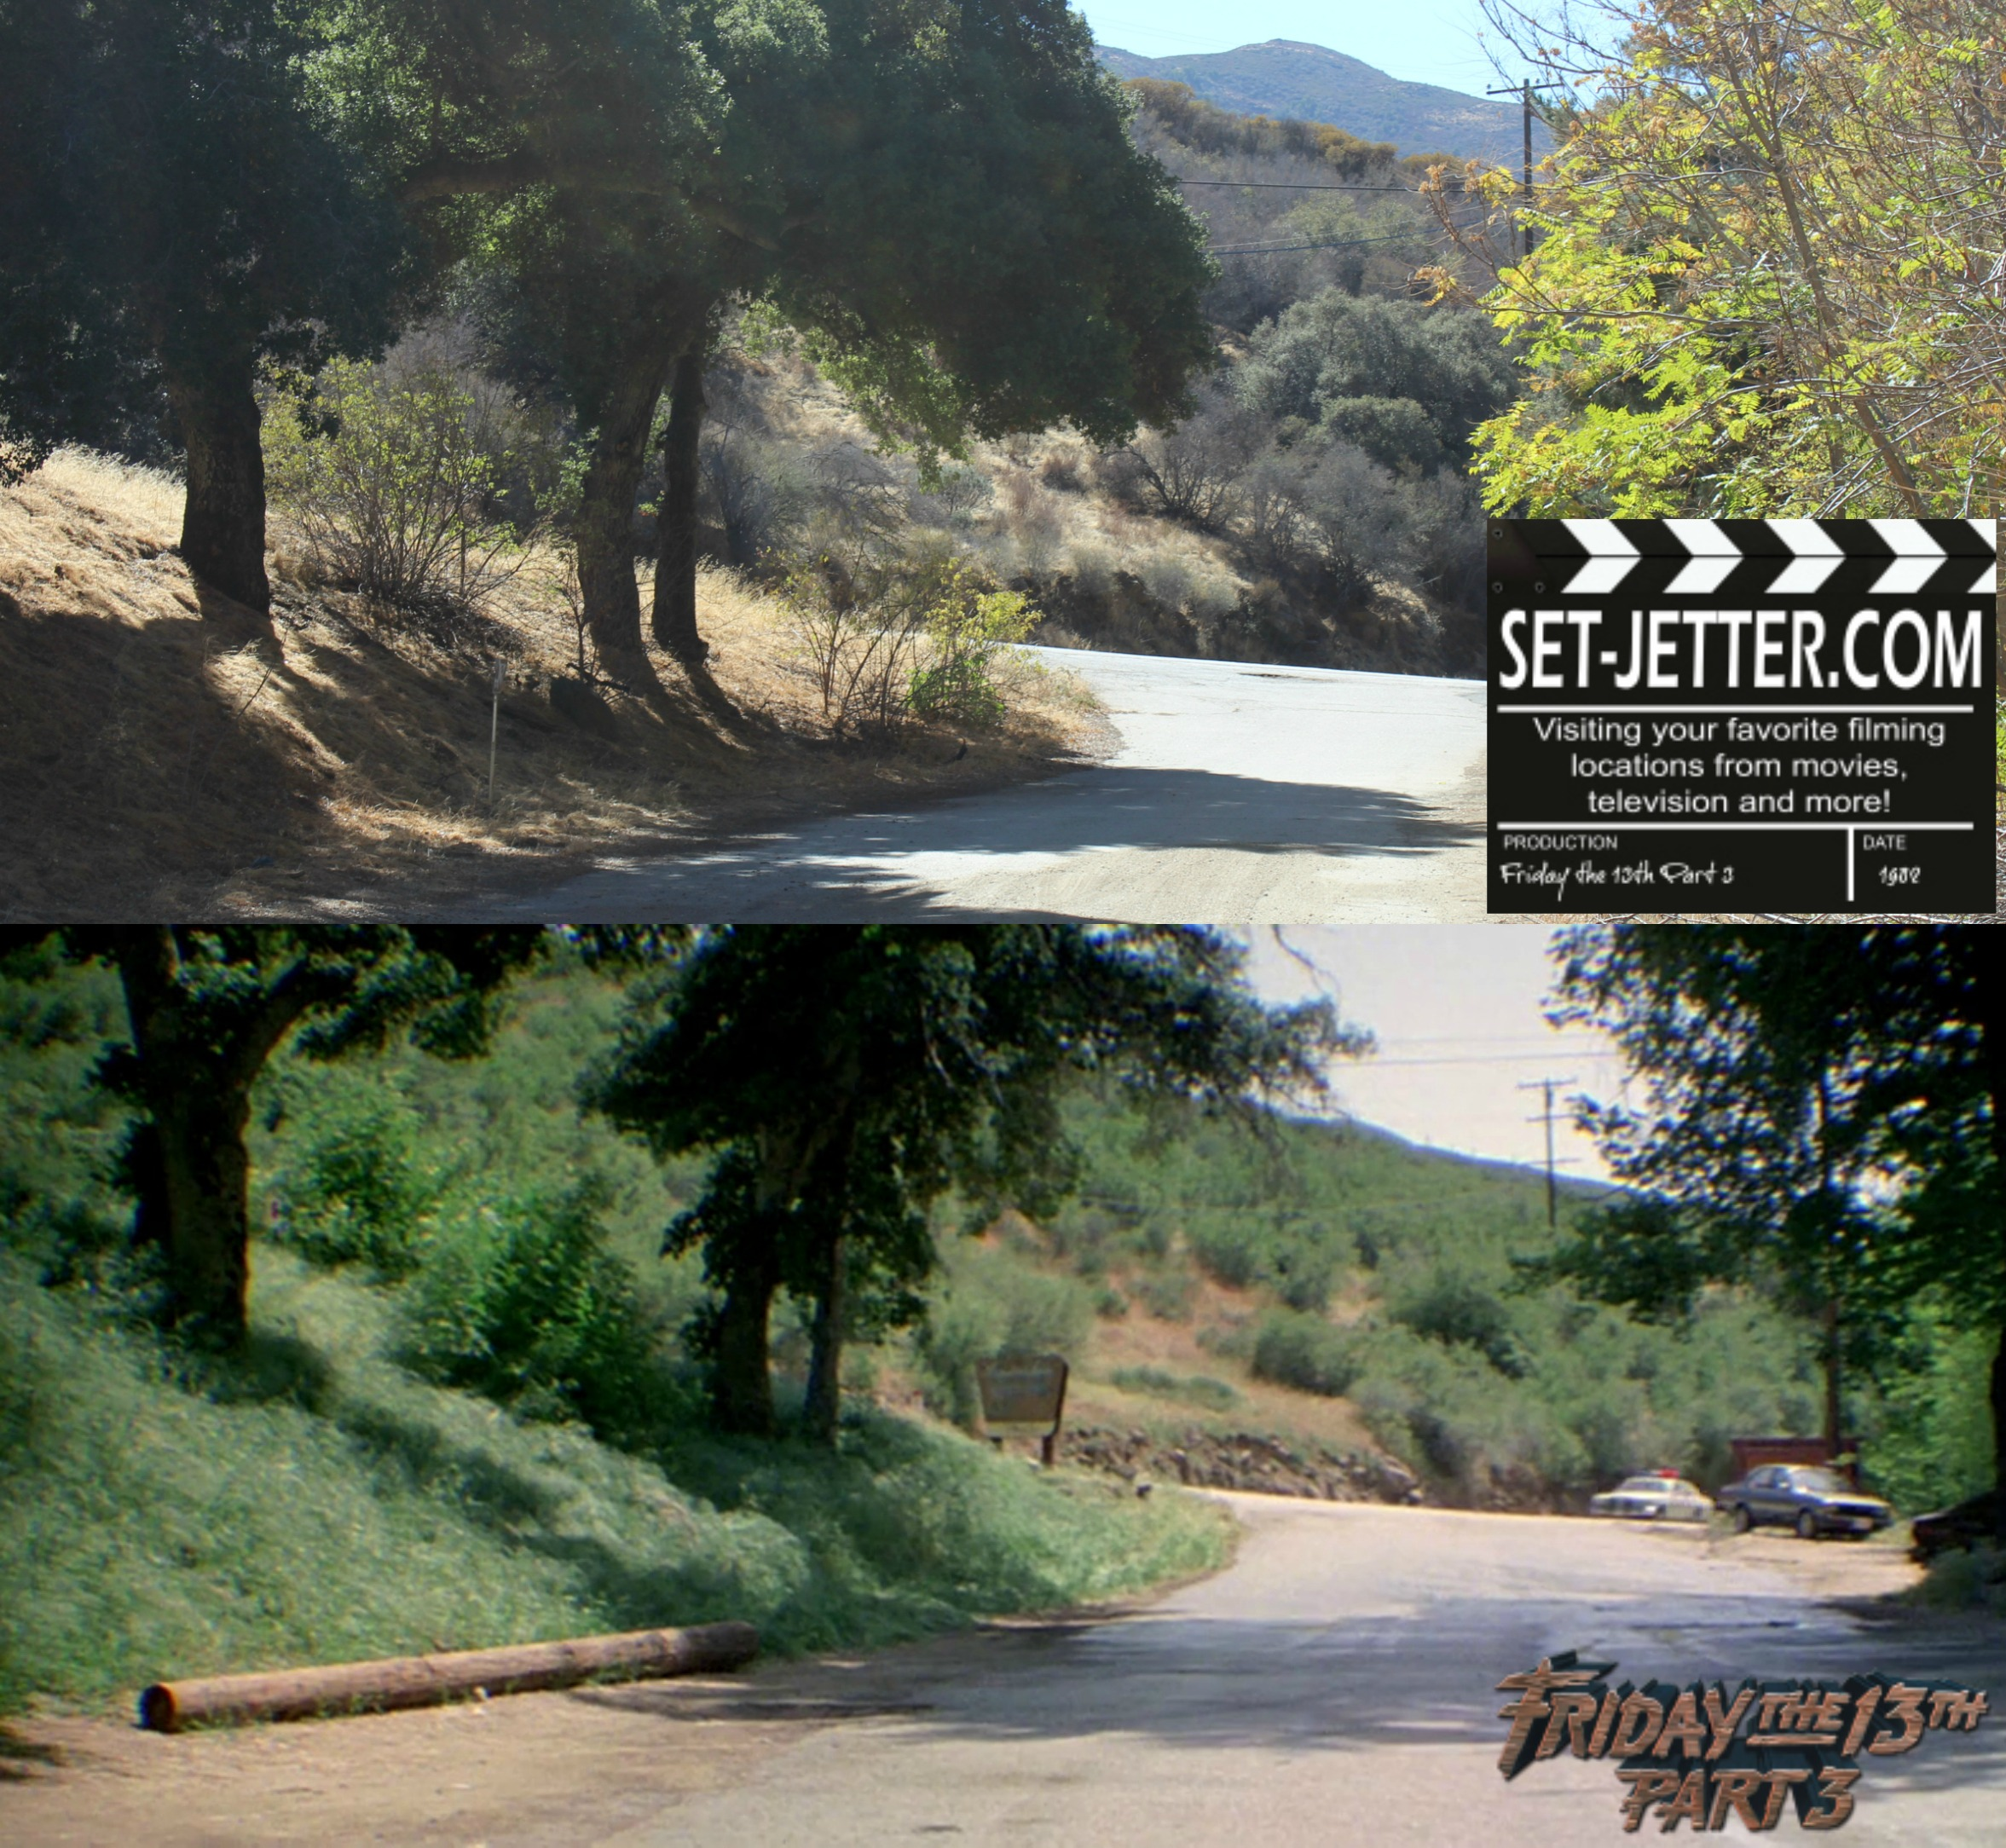 Friday the 13th Part 3 comparison 210.jpg